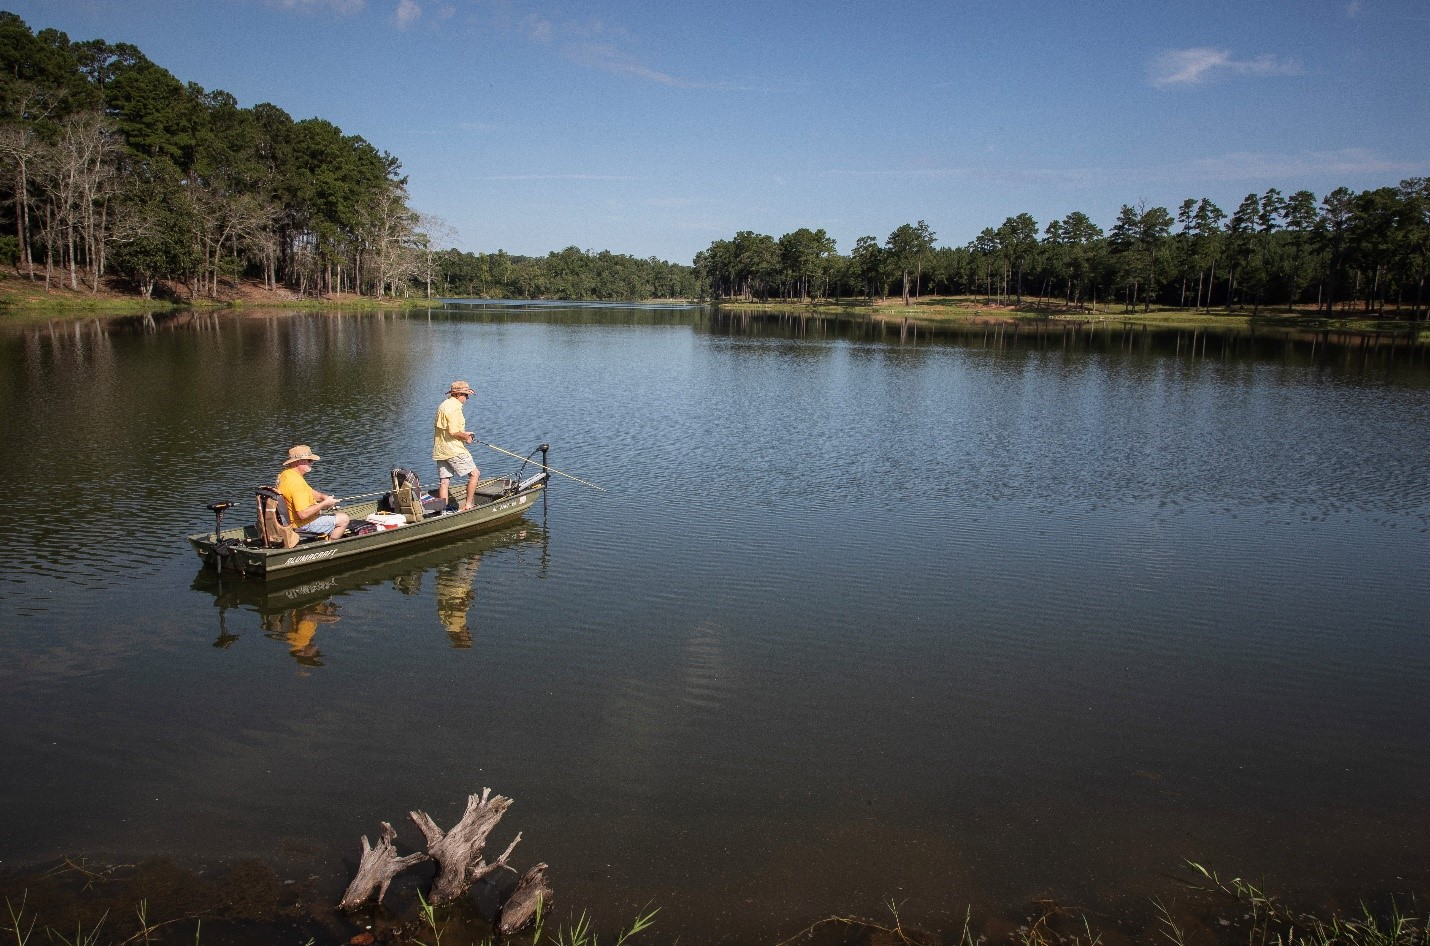 Boating and fishing are fun, stress-relieving activities that can be enjoyed with family and friends year-round. From connecting with loved ones to de-stressing after a busy week, boating and fishing help to maintain a healthy lifestyle.